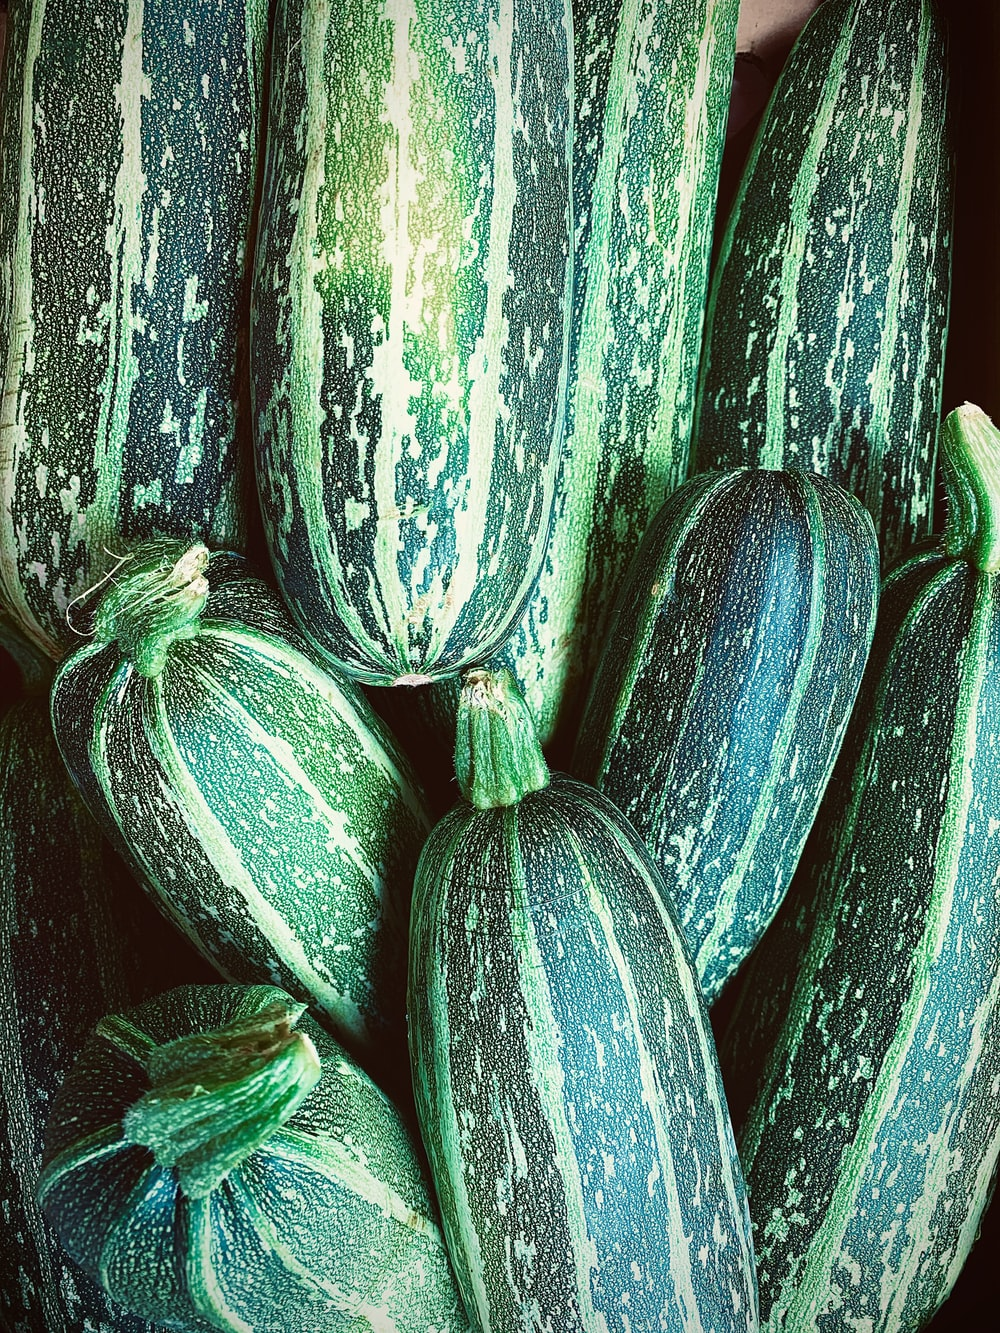 green and yellow cucumber lot